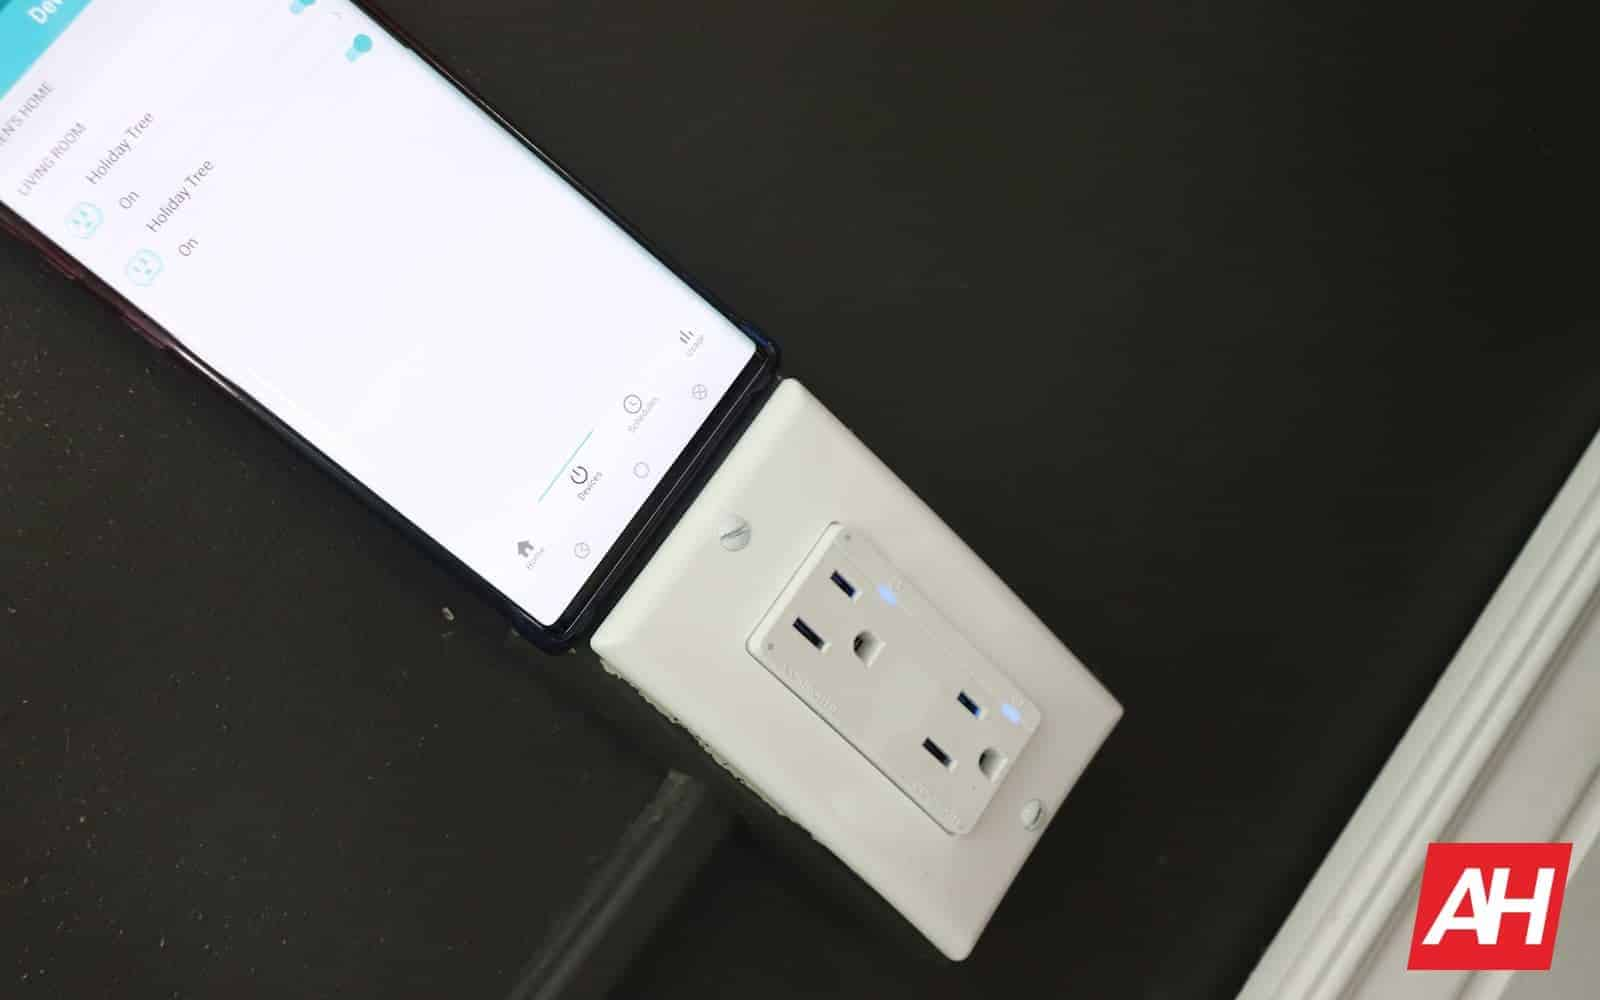 ConnectSense In Wall Outlet Review 04 0 Smart integration AH 2019